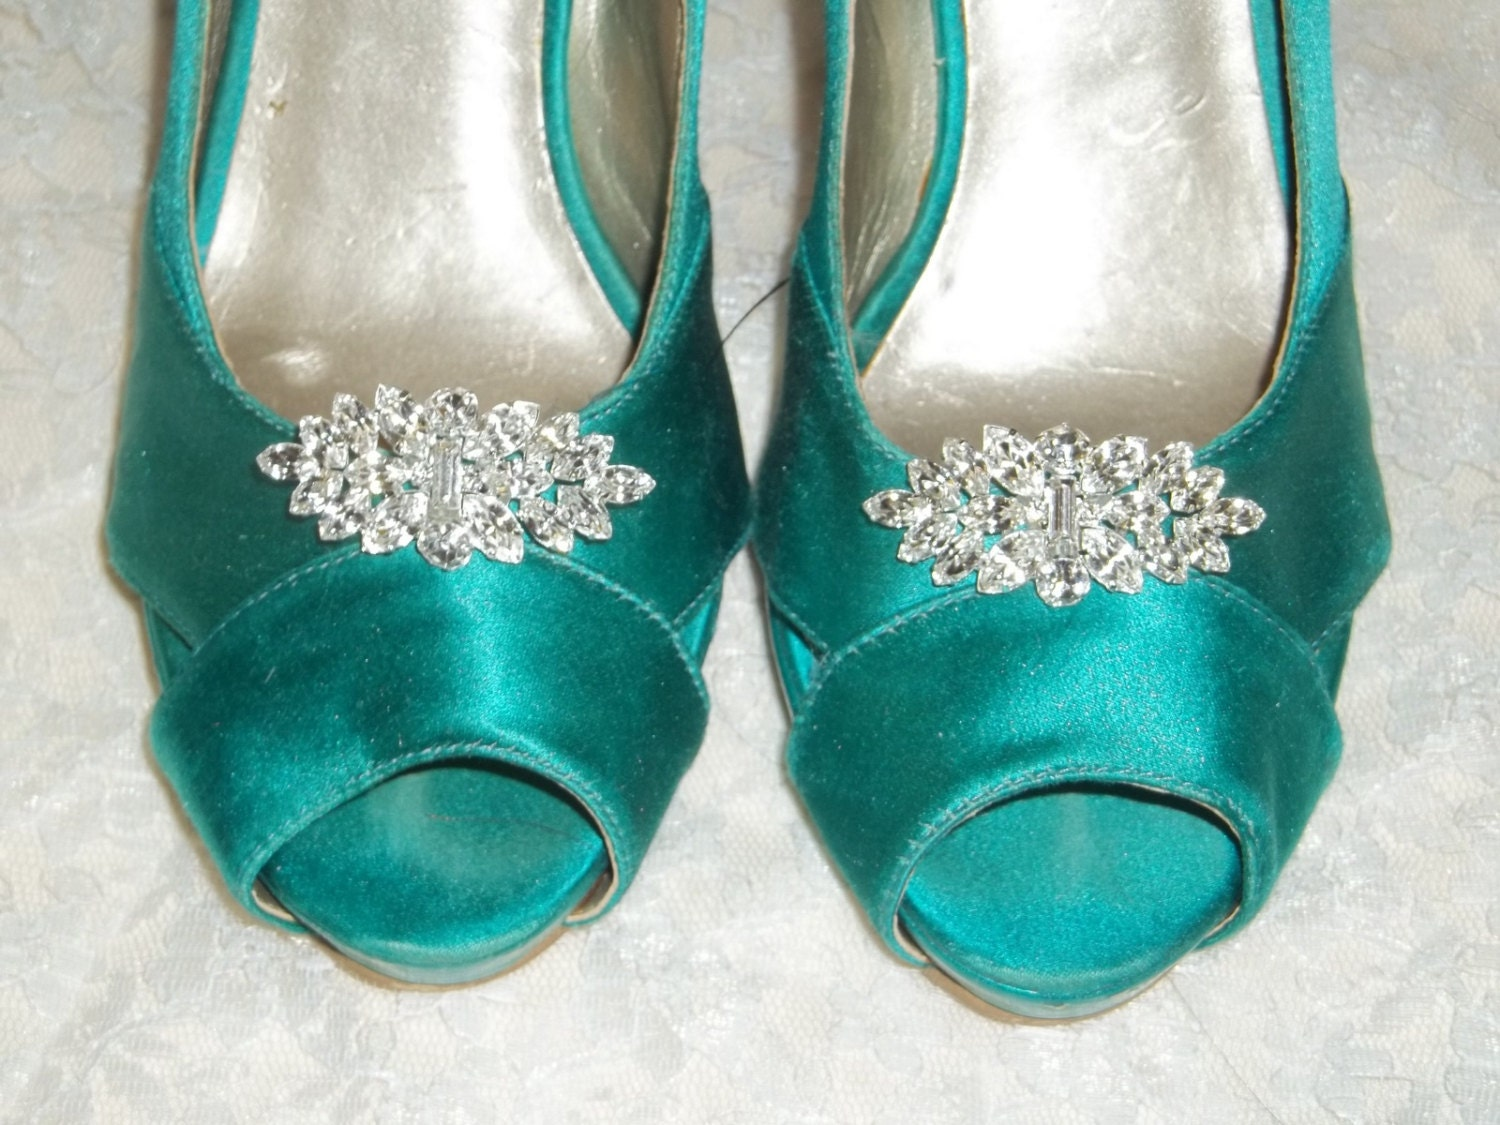 Wedding Heels With Rhinestones: Rhinestone Shoe Clips Bridal Shoe Clips Rhinestone Shoes